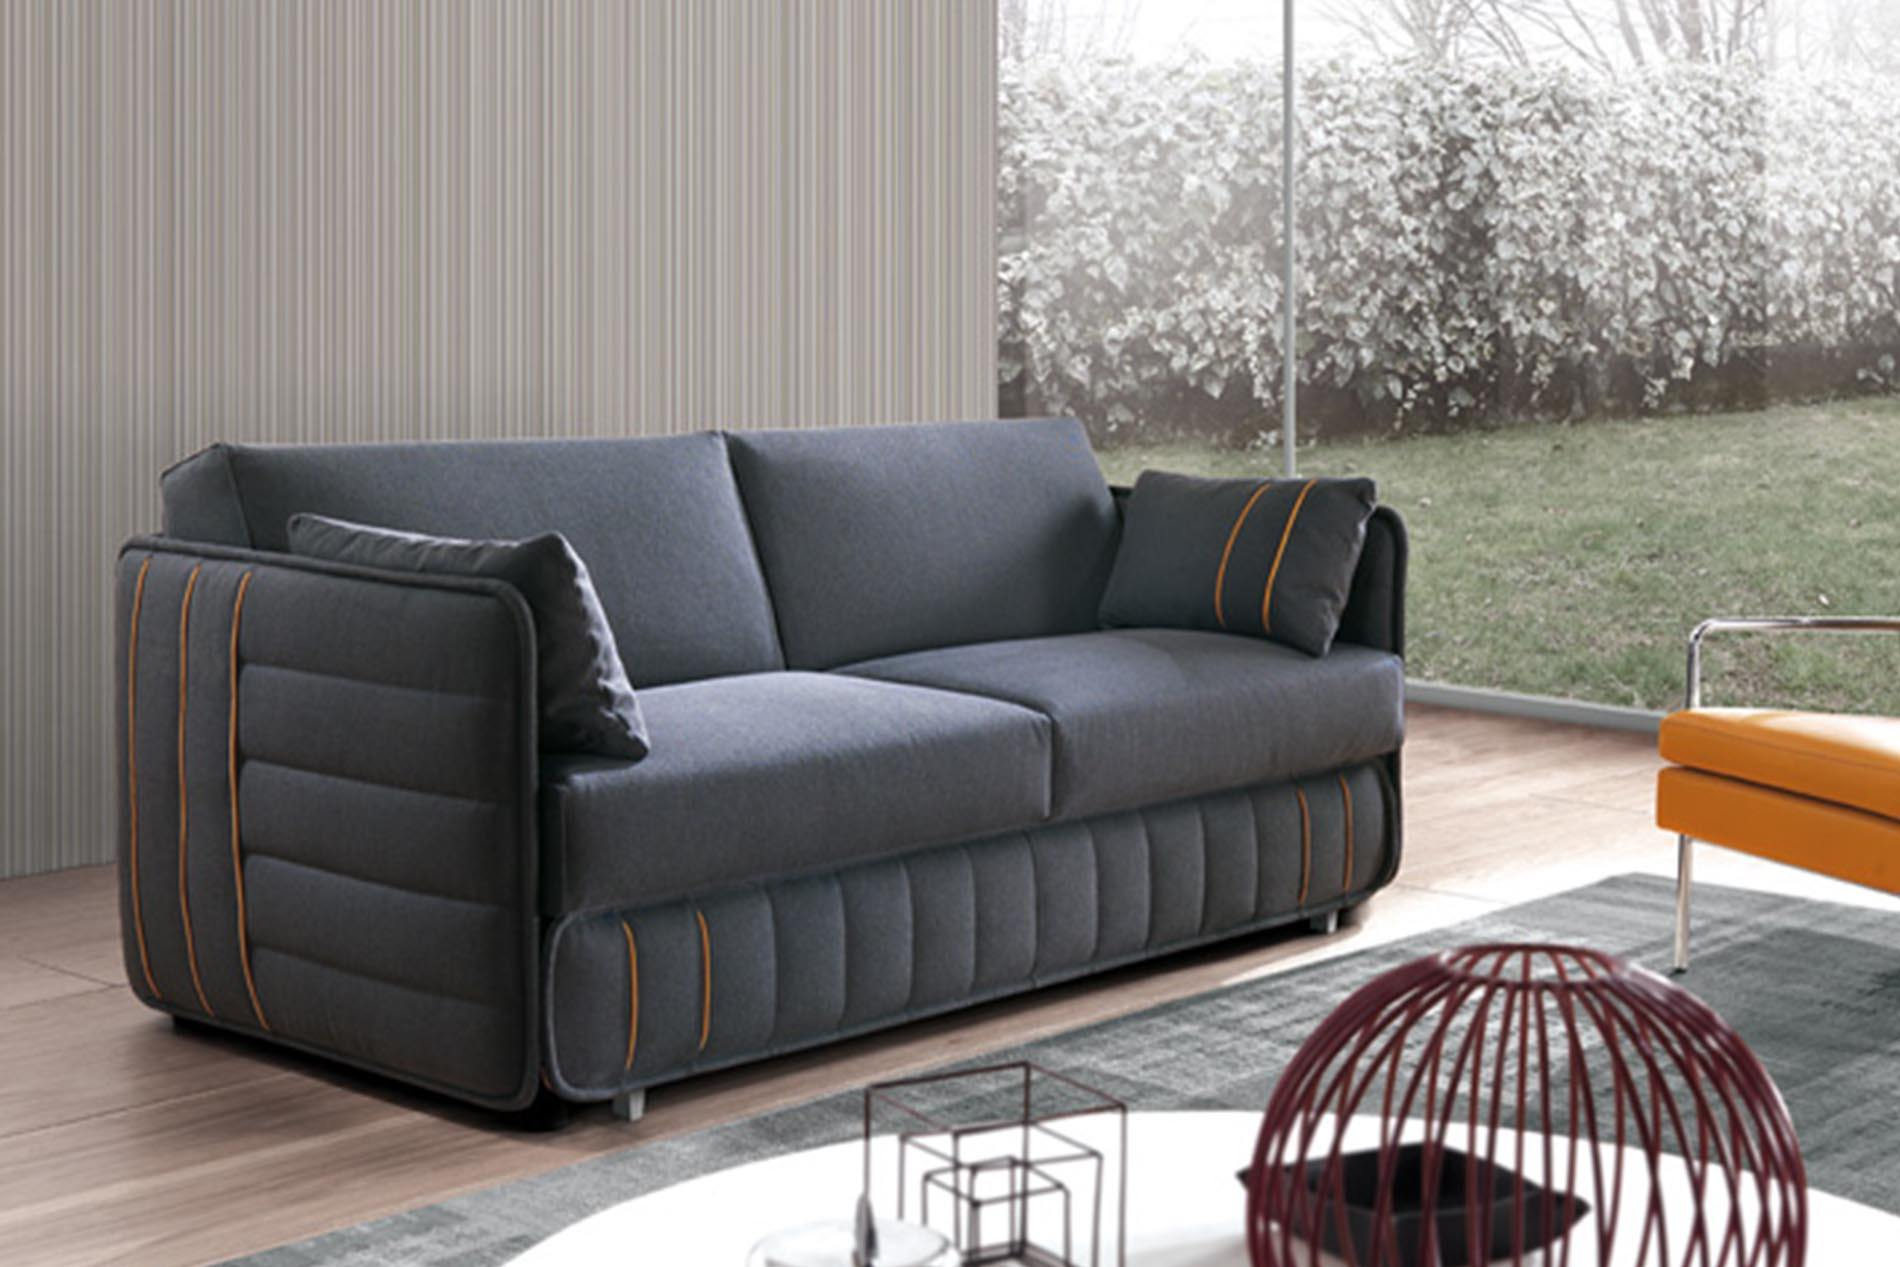 Design Bettsofa bettsofa design jellabiya com